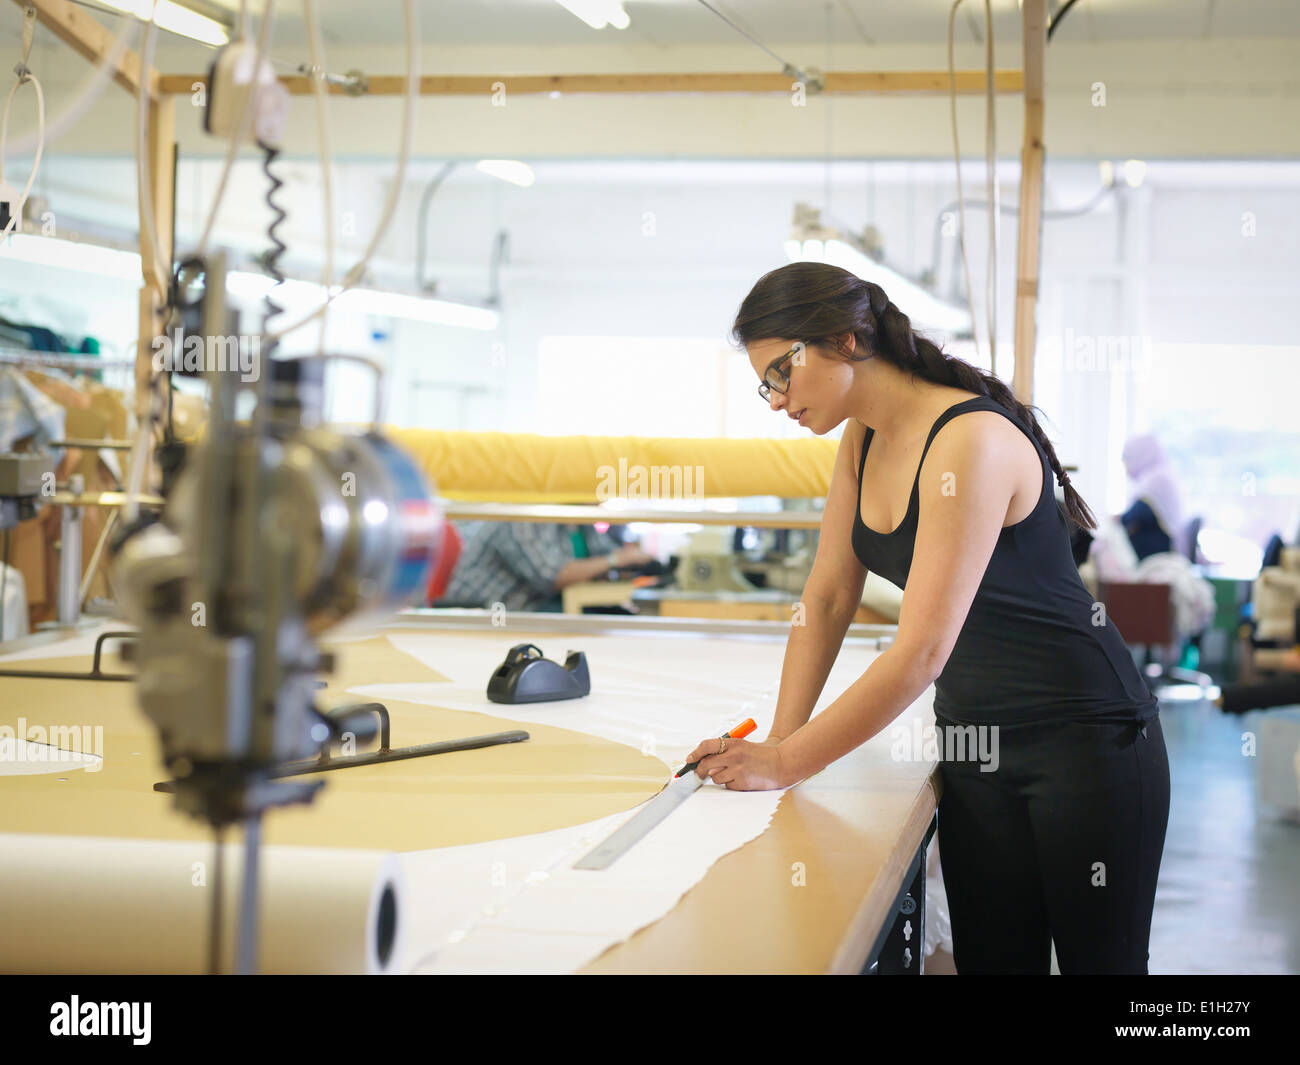 Female garment worker marking cloth in clothing factory - Stock Image